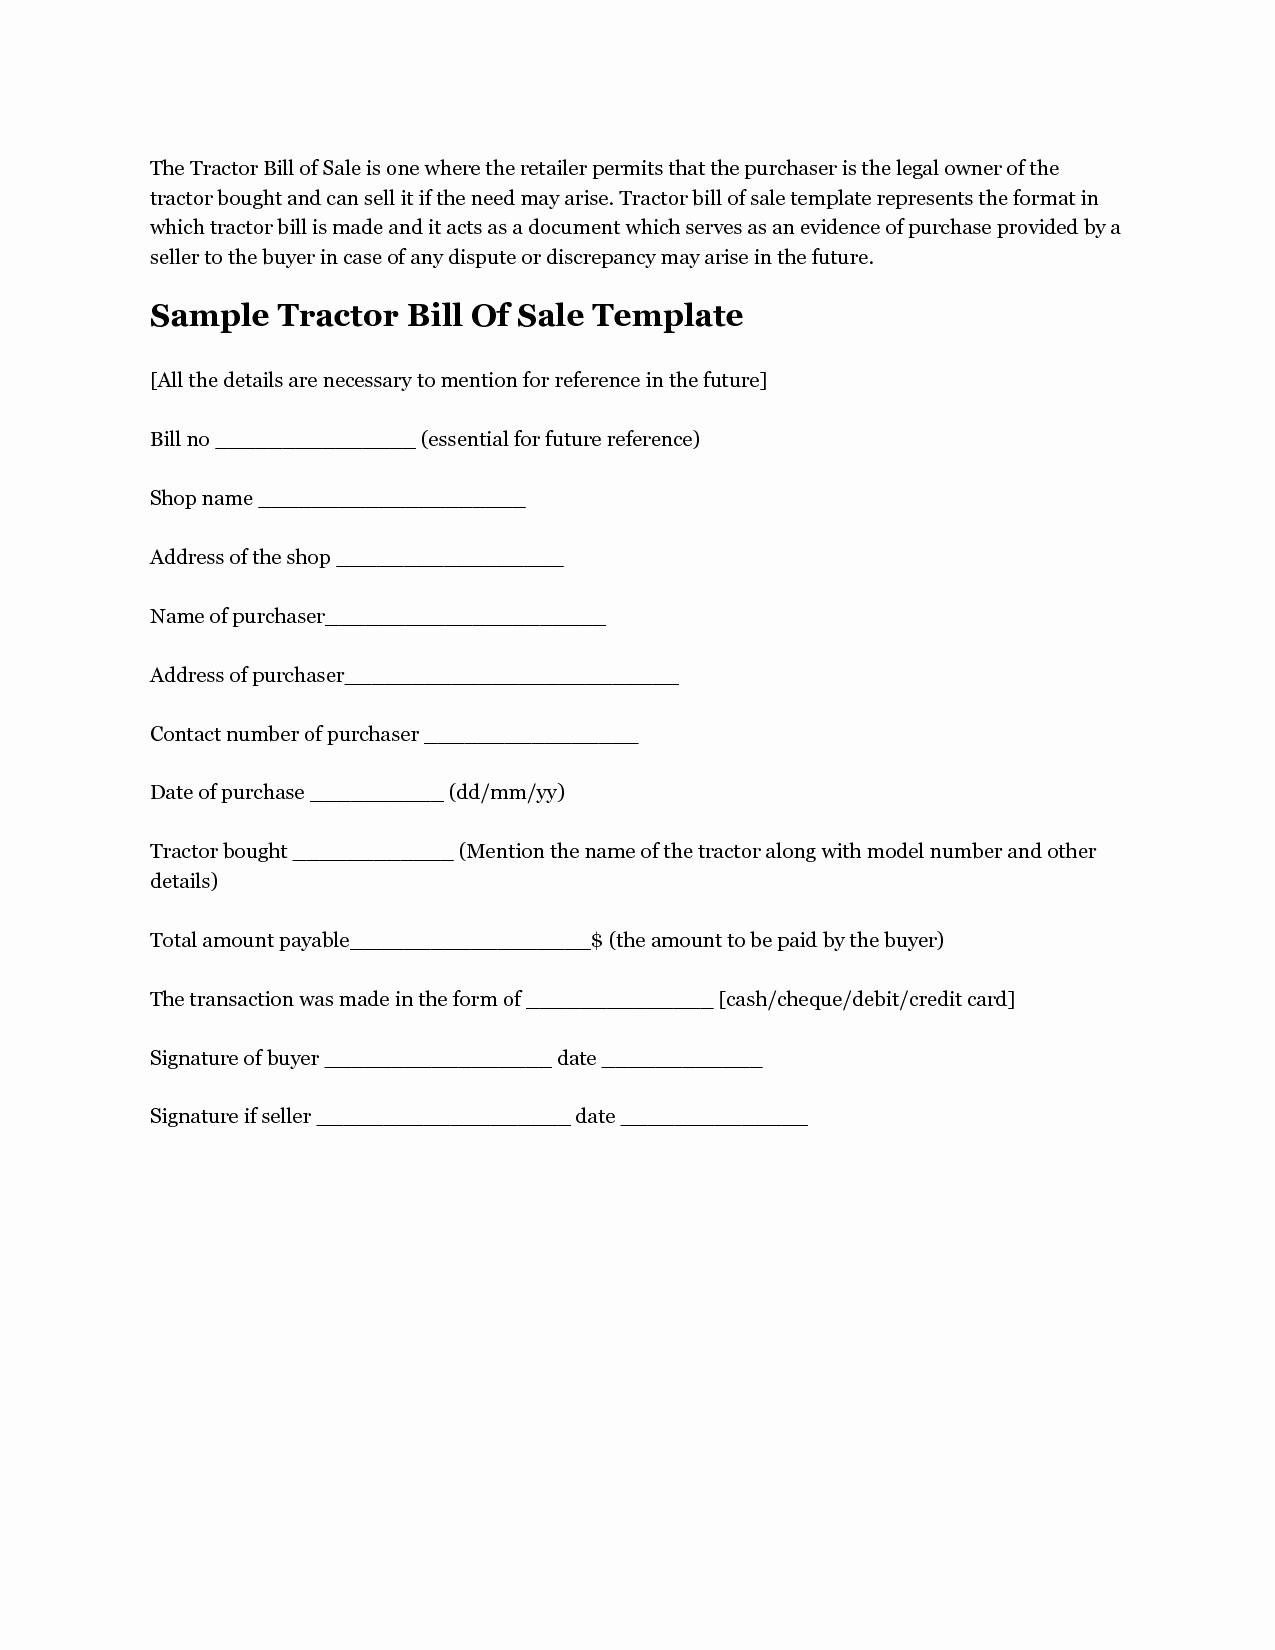 Bill Of Sale format Sample Inspirational Free Printable Tractor Bill Of Sale form Generic